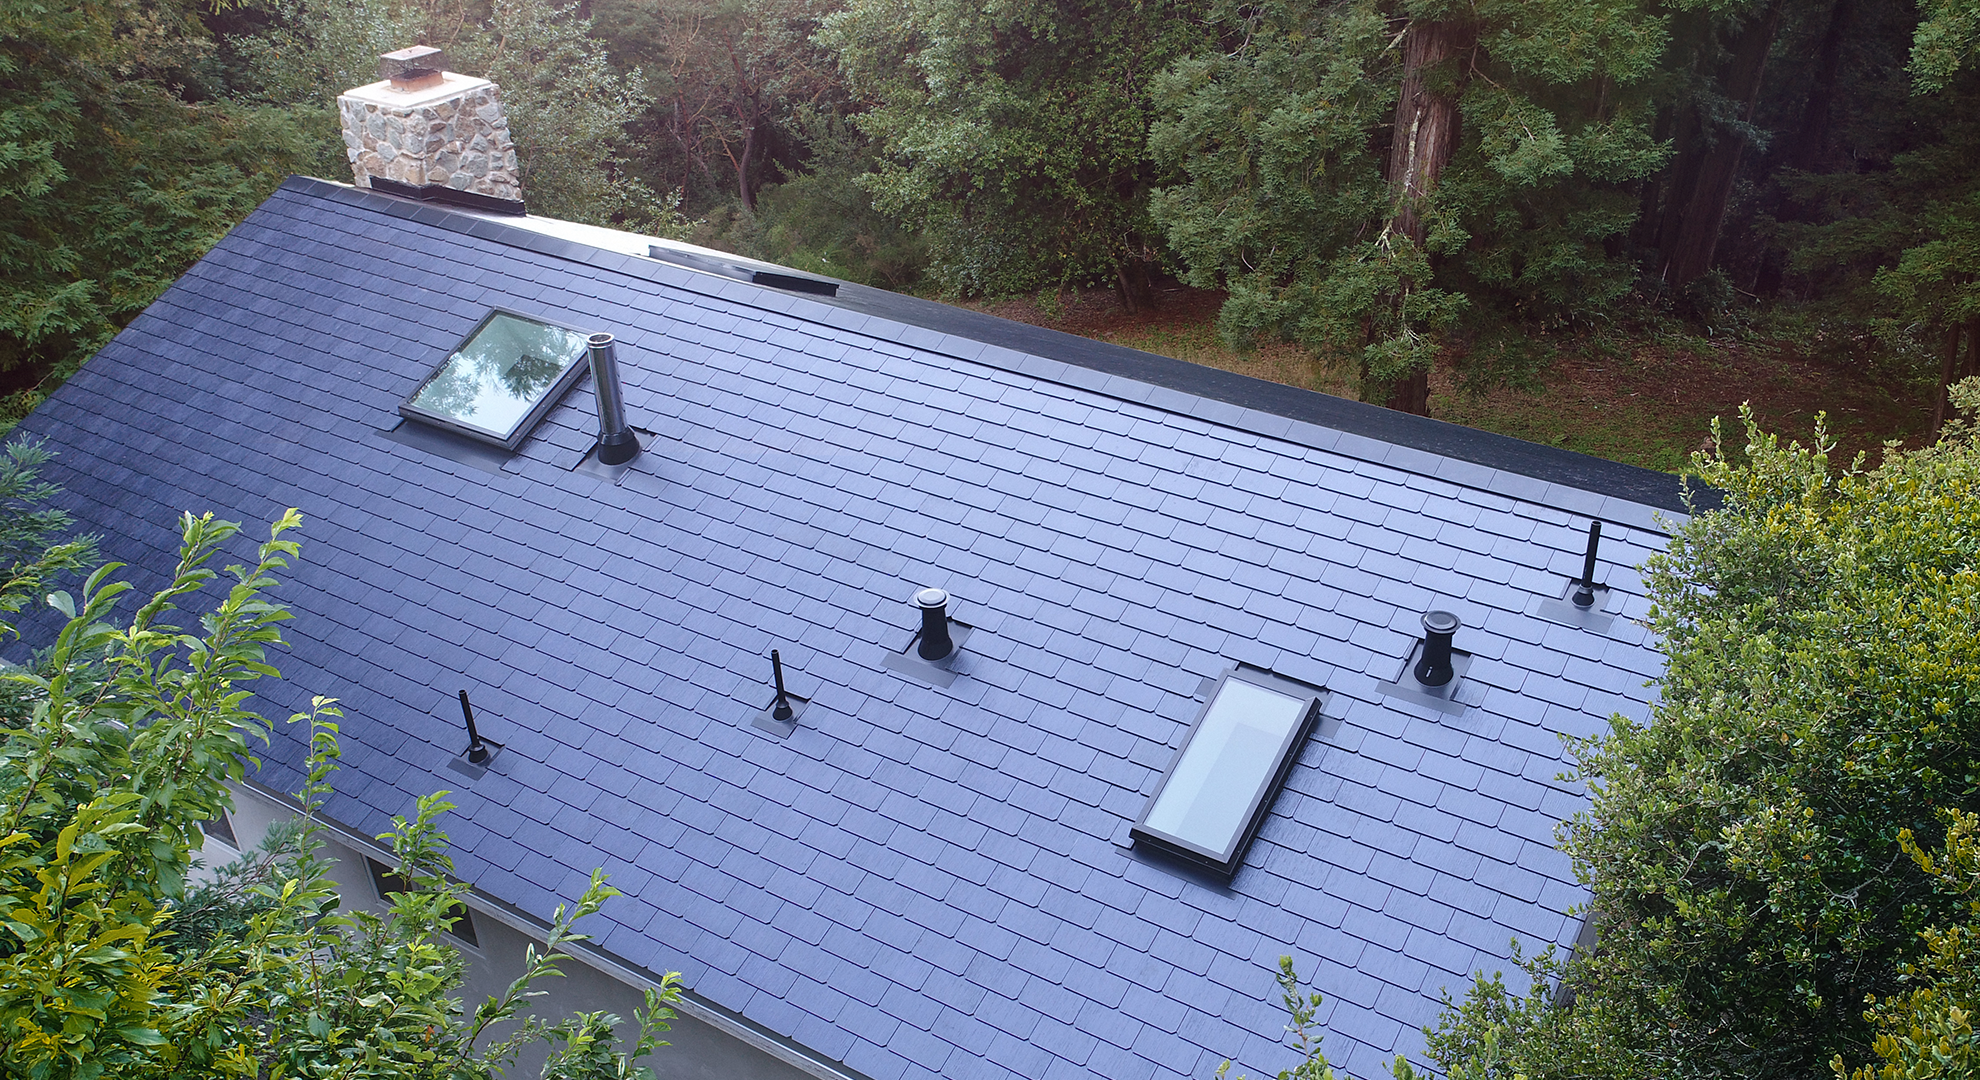 Eco designed roof tiles by Tesla